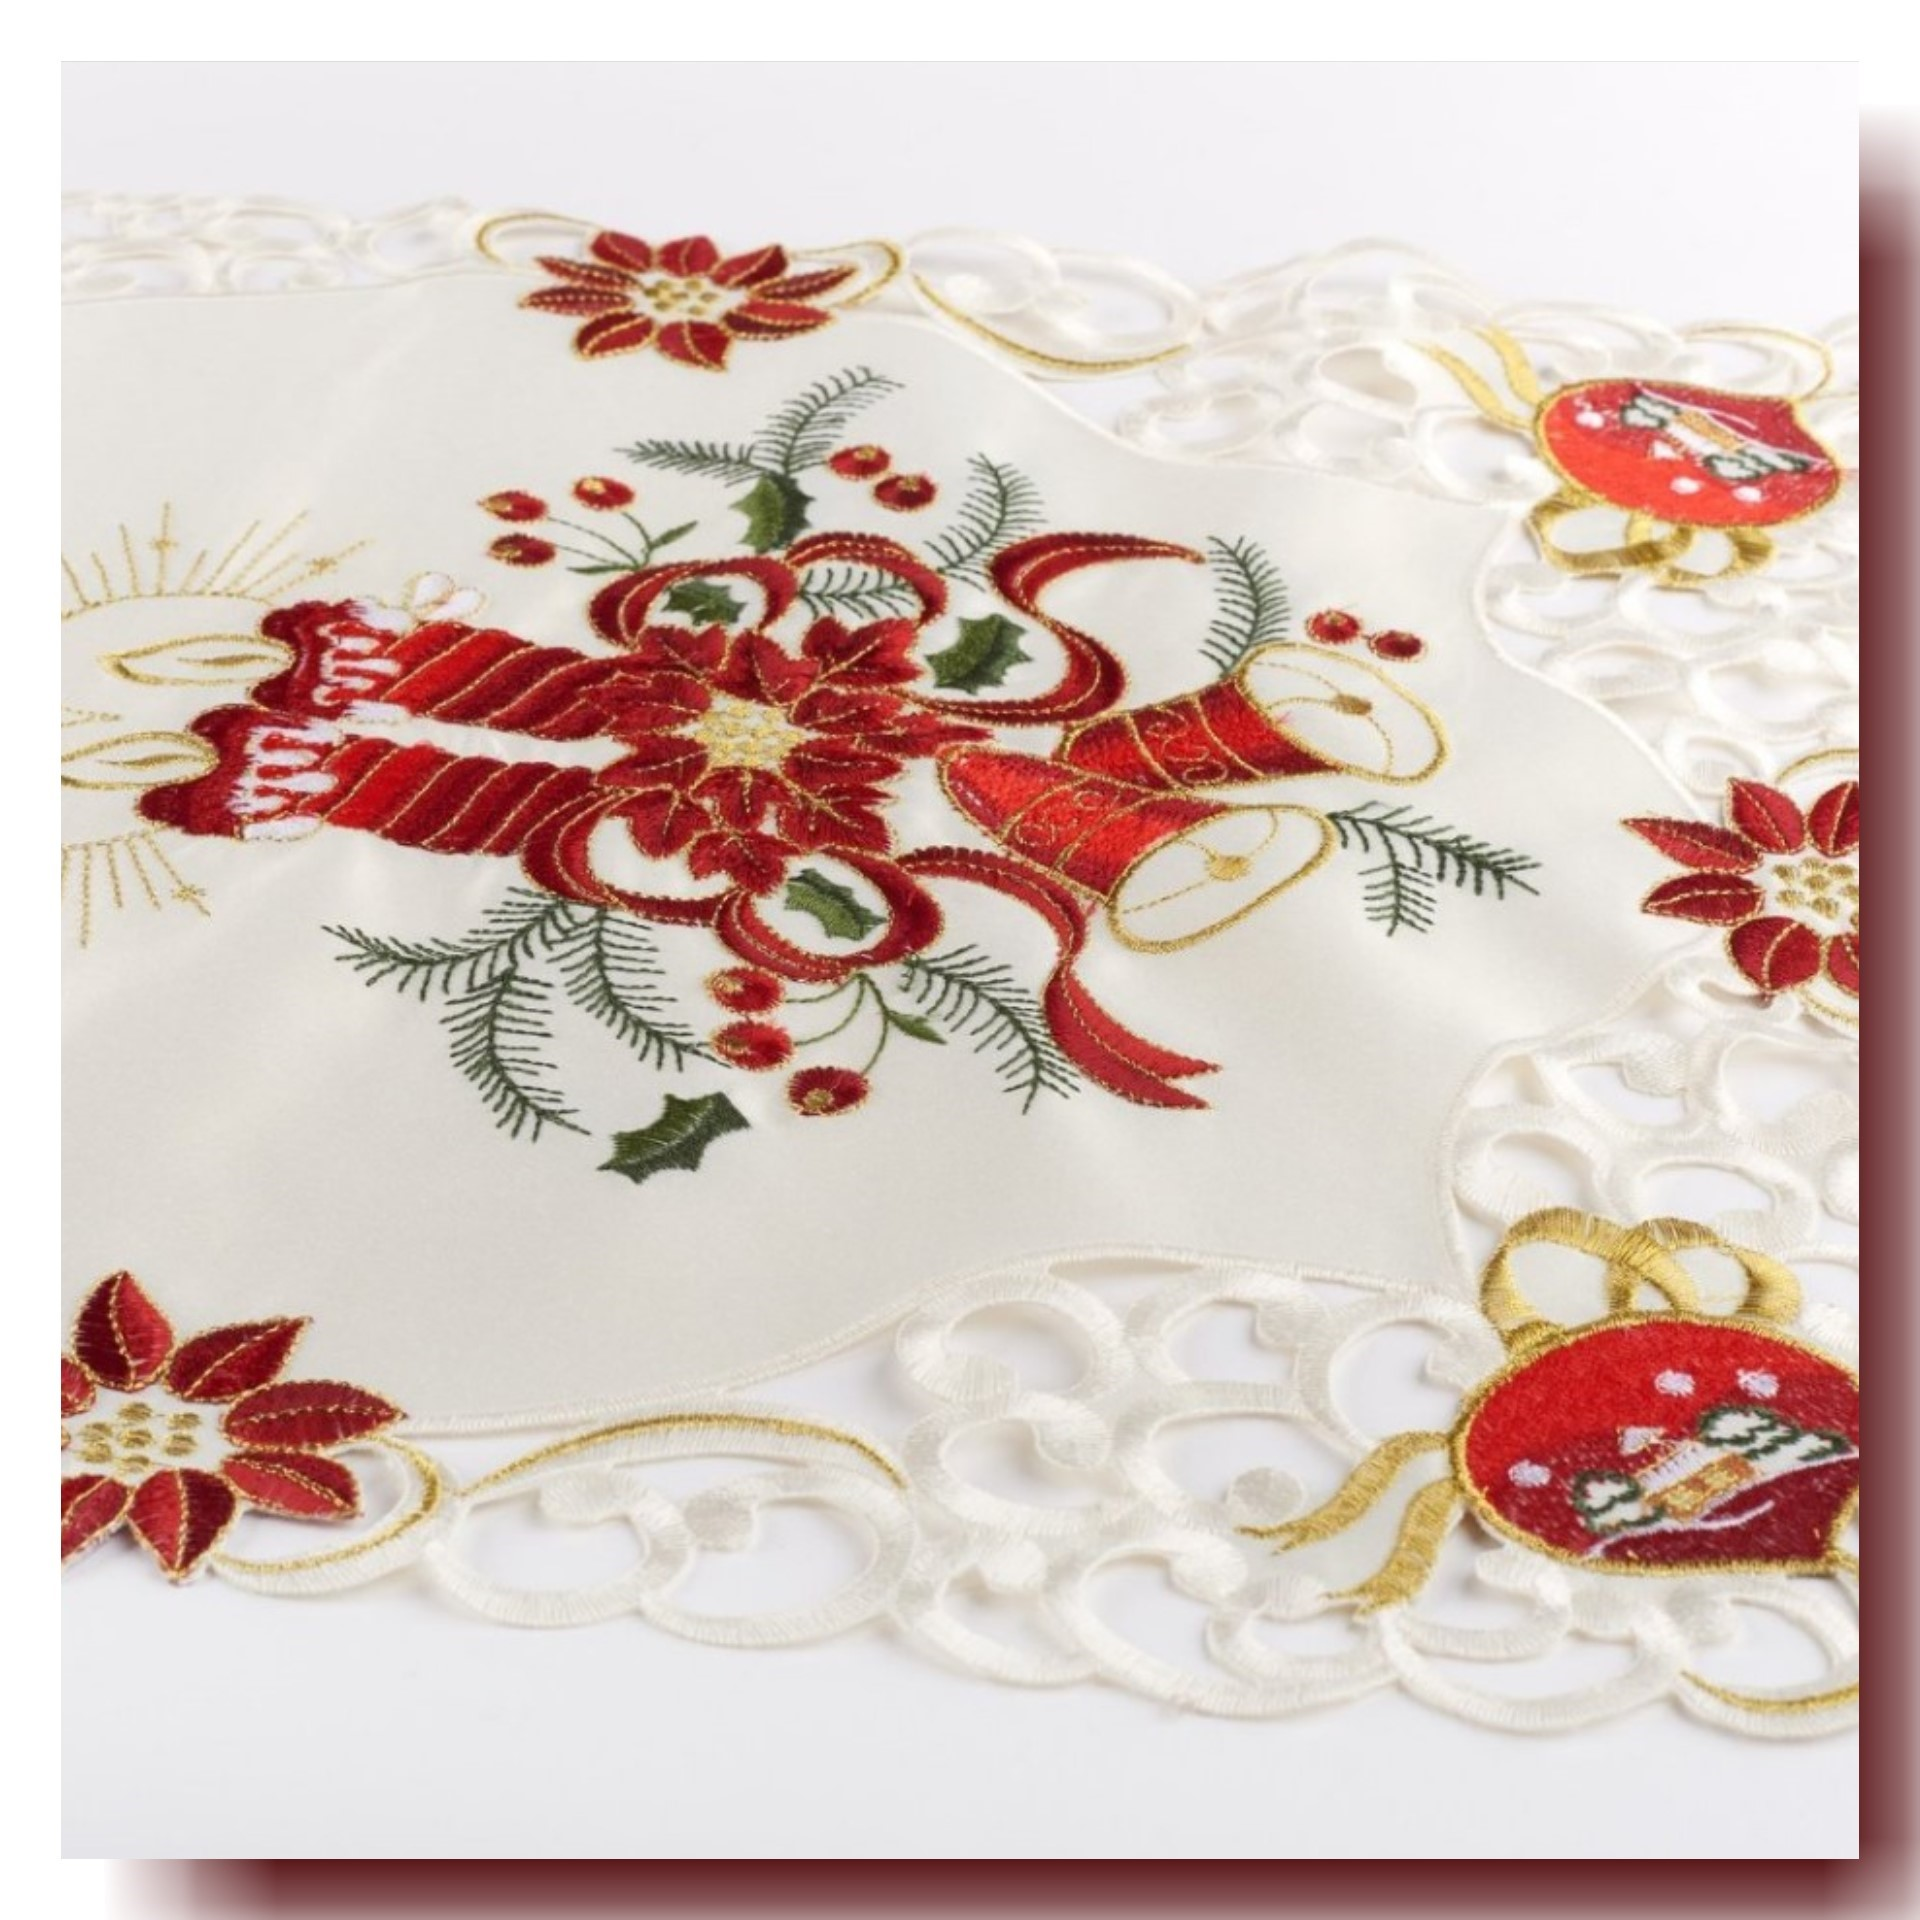 cucina chef table cloth and runner receive rave reviews   cucina chef - Runner Cucina